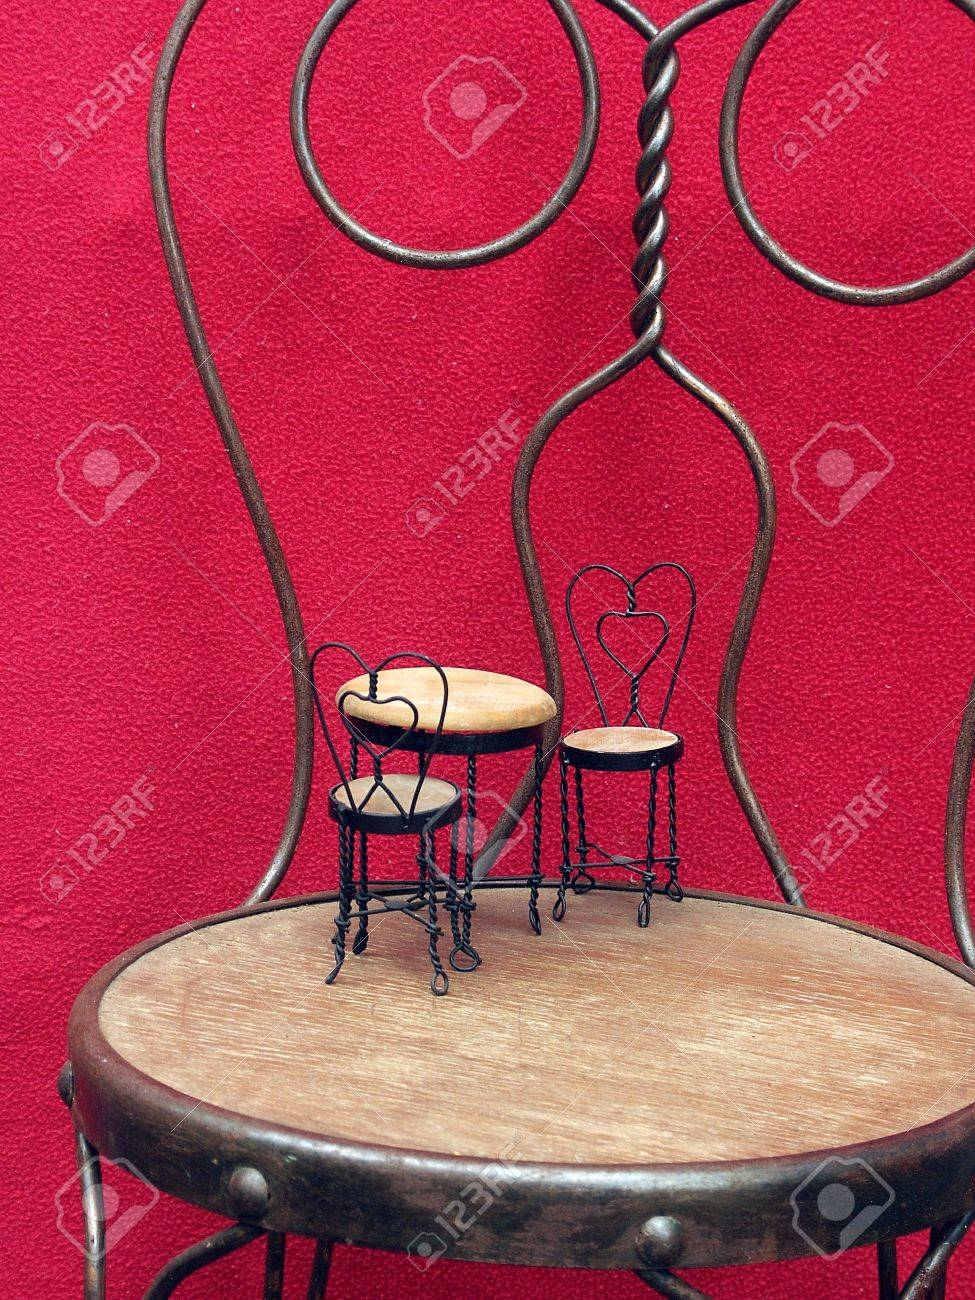 Miniature Ice Cream Table And Chairs Sitting On Full Sized Ice Cream Chair  Before Red Background